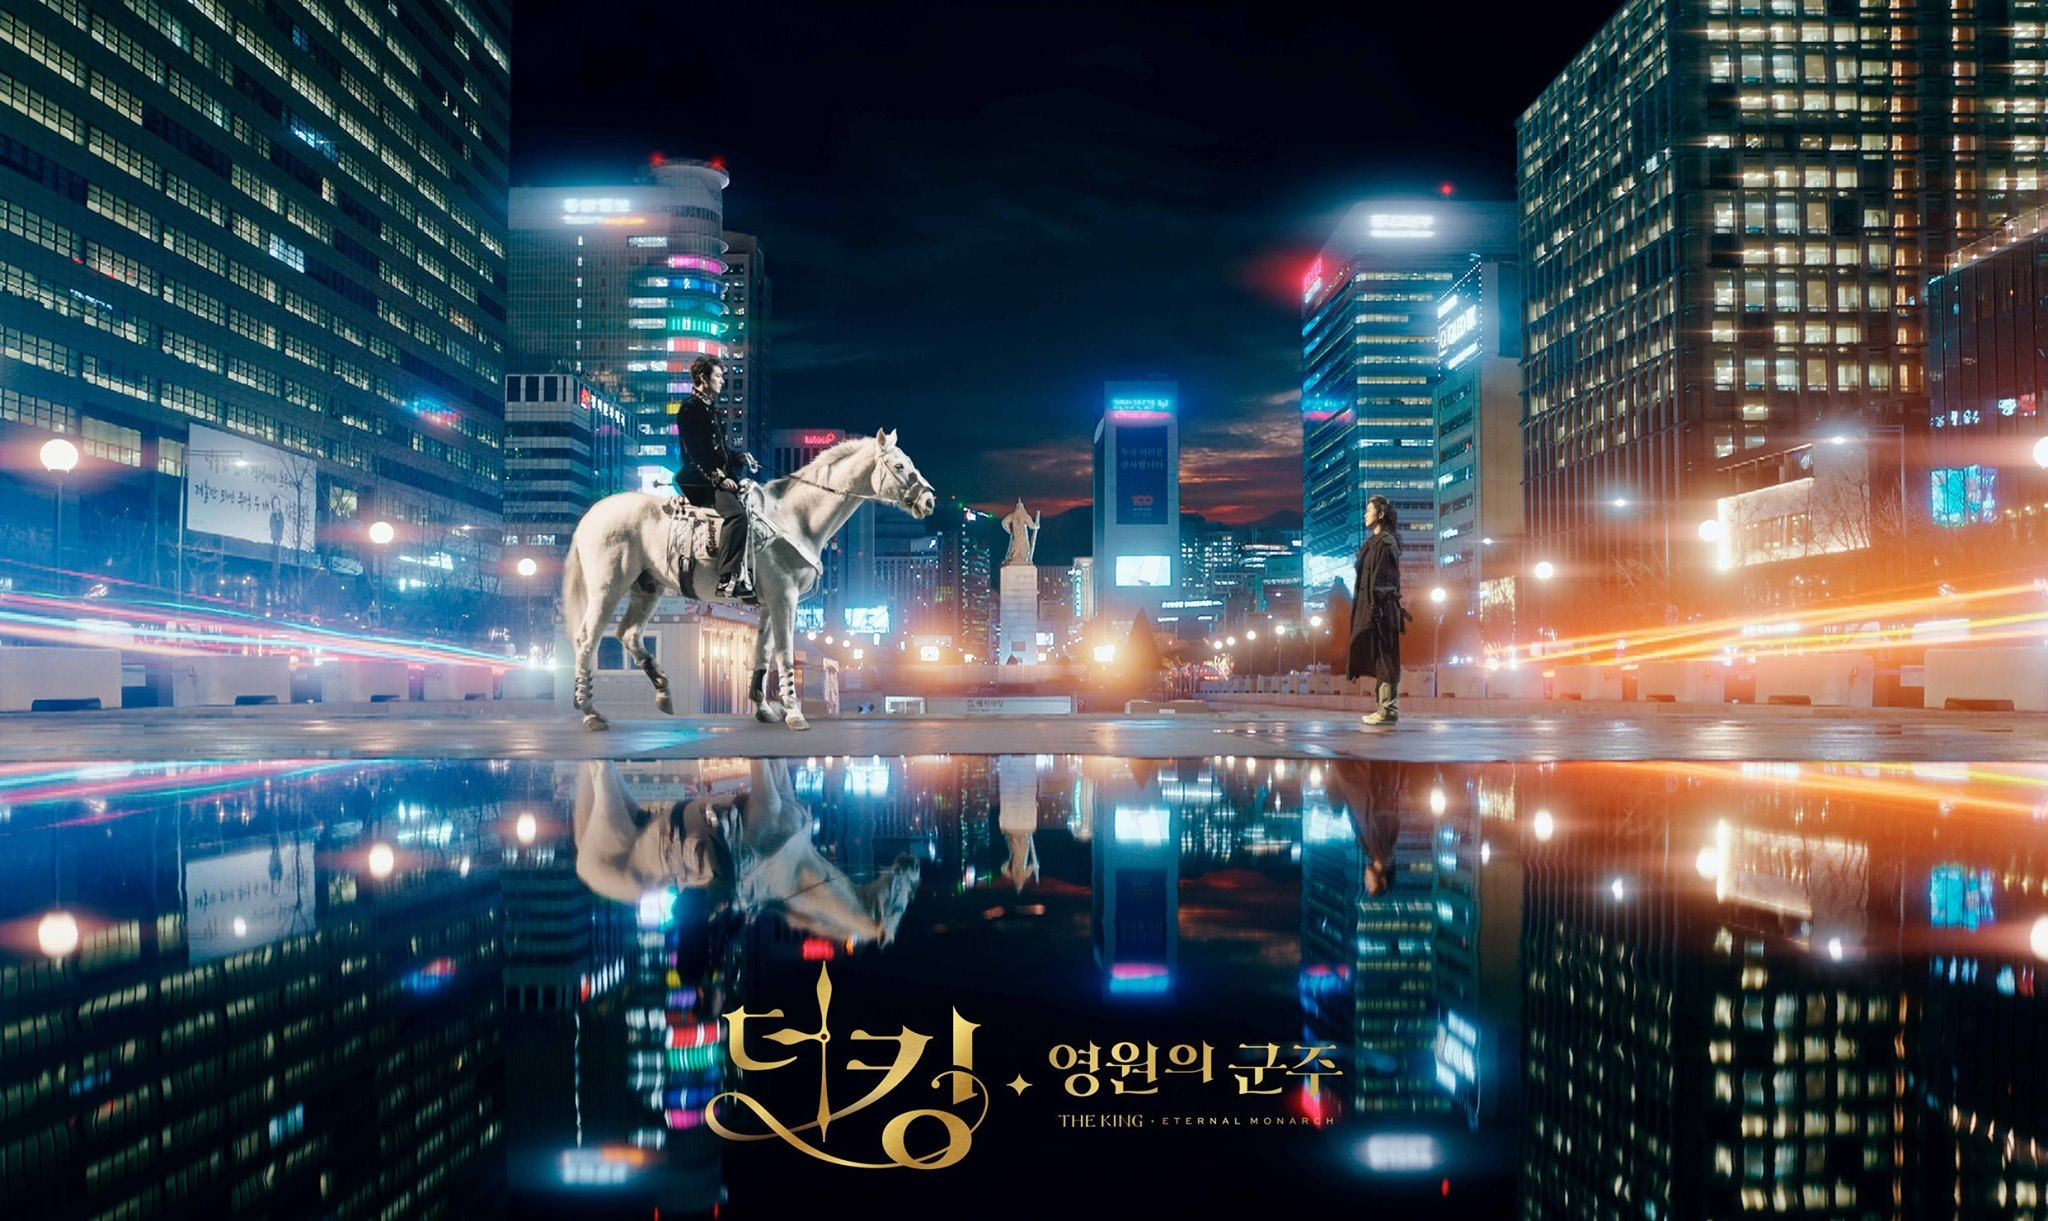 더 킹: 영원의 군주 The King: Eternal Monarch (2020)